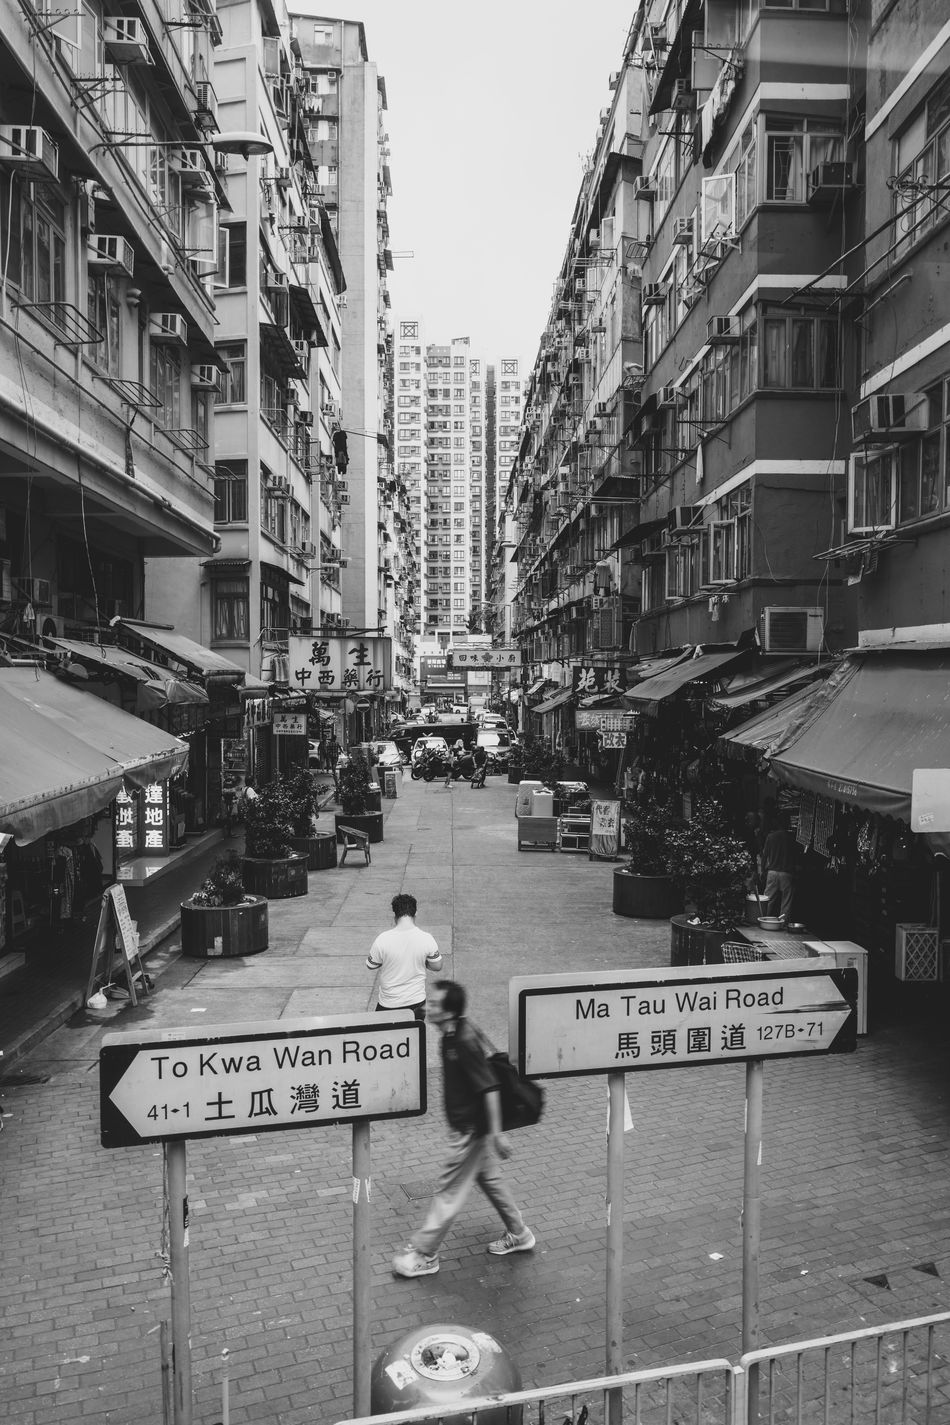 Border EyeEmNewHere The Secret Spaces Discoverhongkong Leicaq Monochrome Photography Black And White Streetphotography EyeEm Masterclass Discover Your City Hello World Travelling Photography Moments Of Life Taking Pictures EyeEm Gallery From My Point Of View Walking Around Shadows & Lights Life In Motion Madeinwetzlar Art Is Everywhere